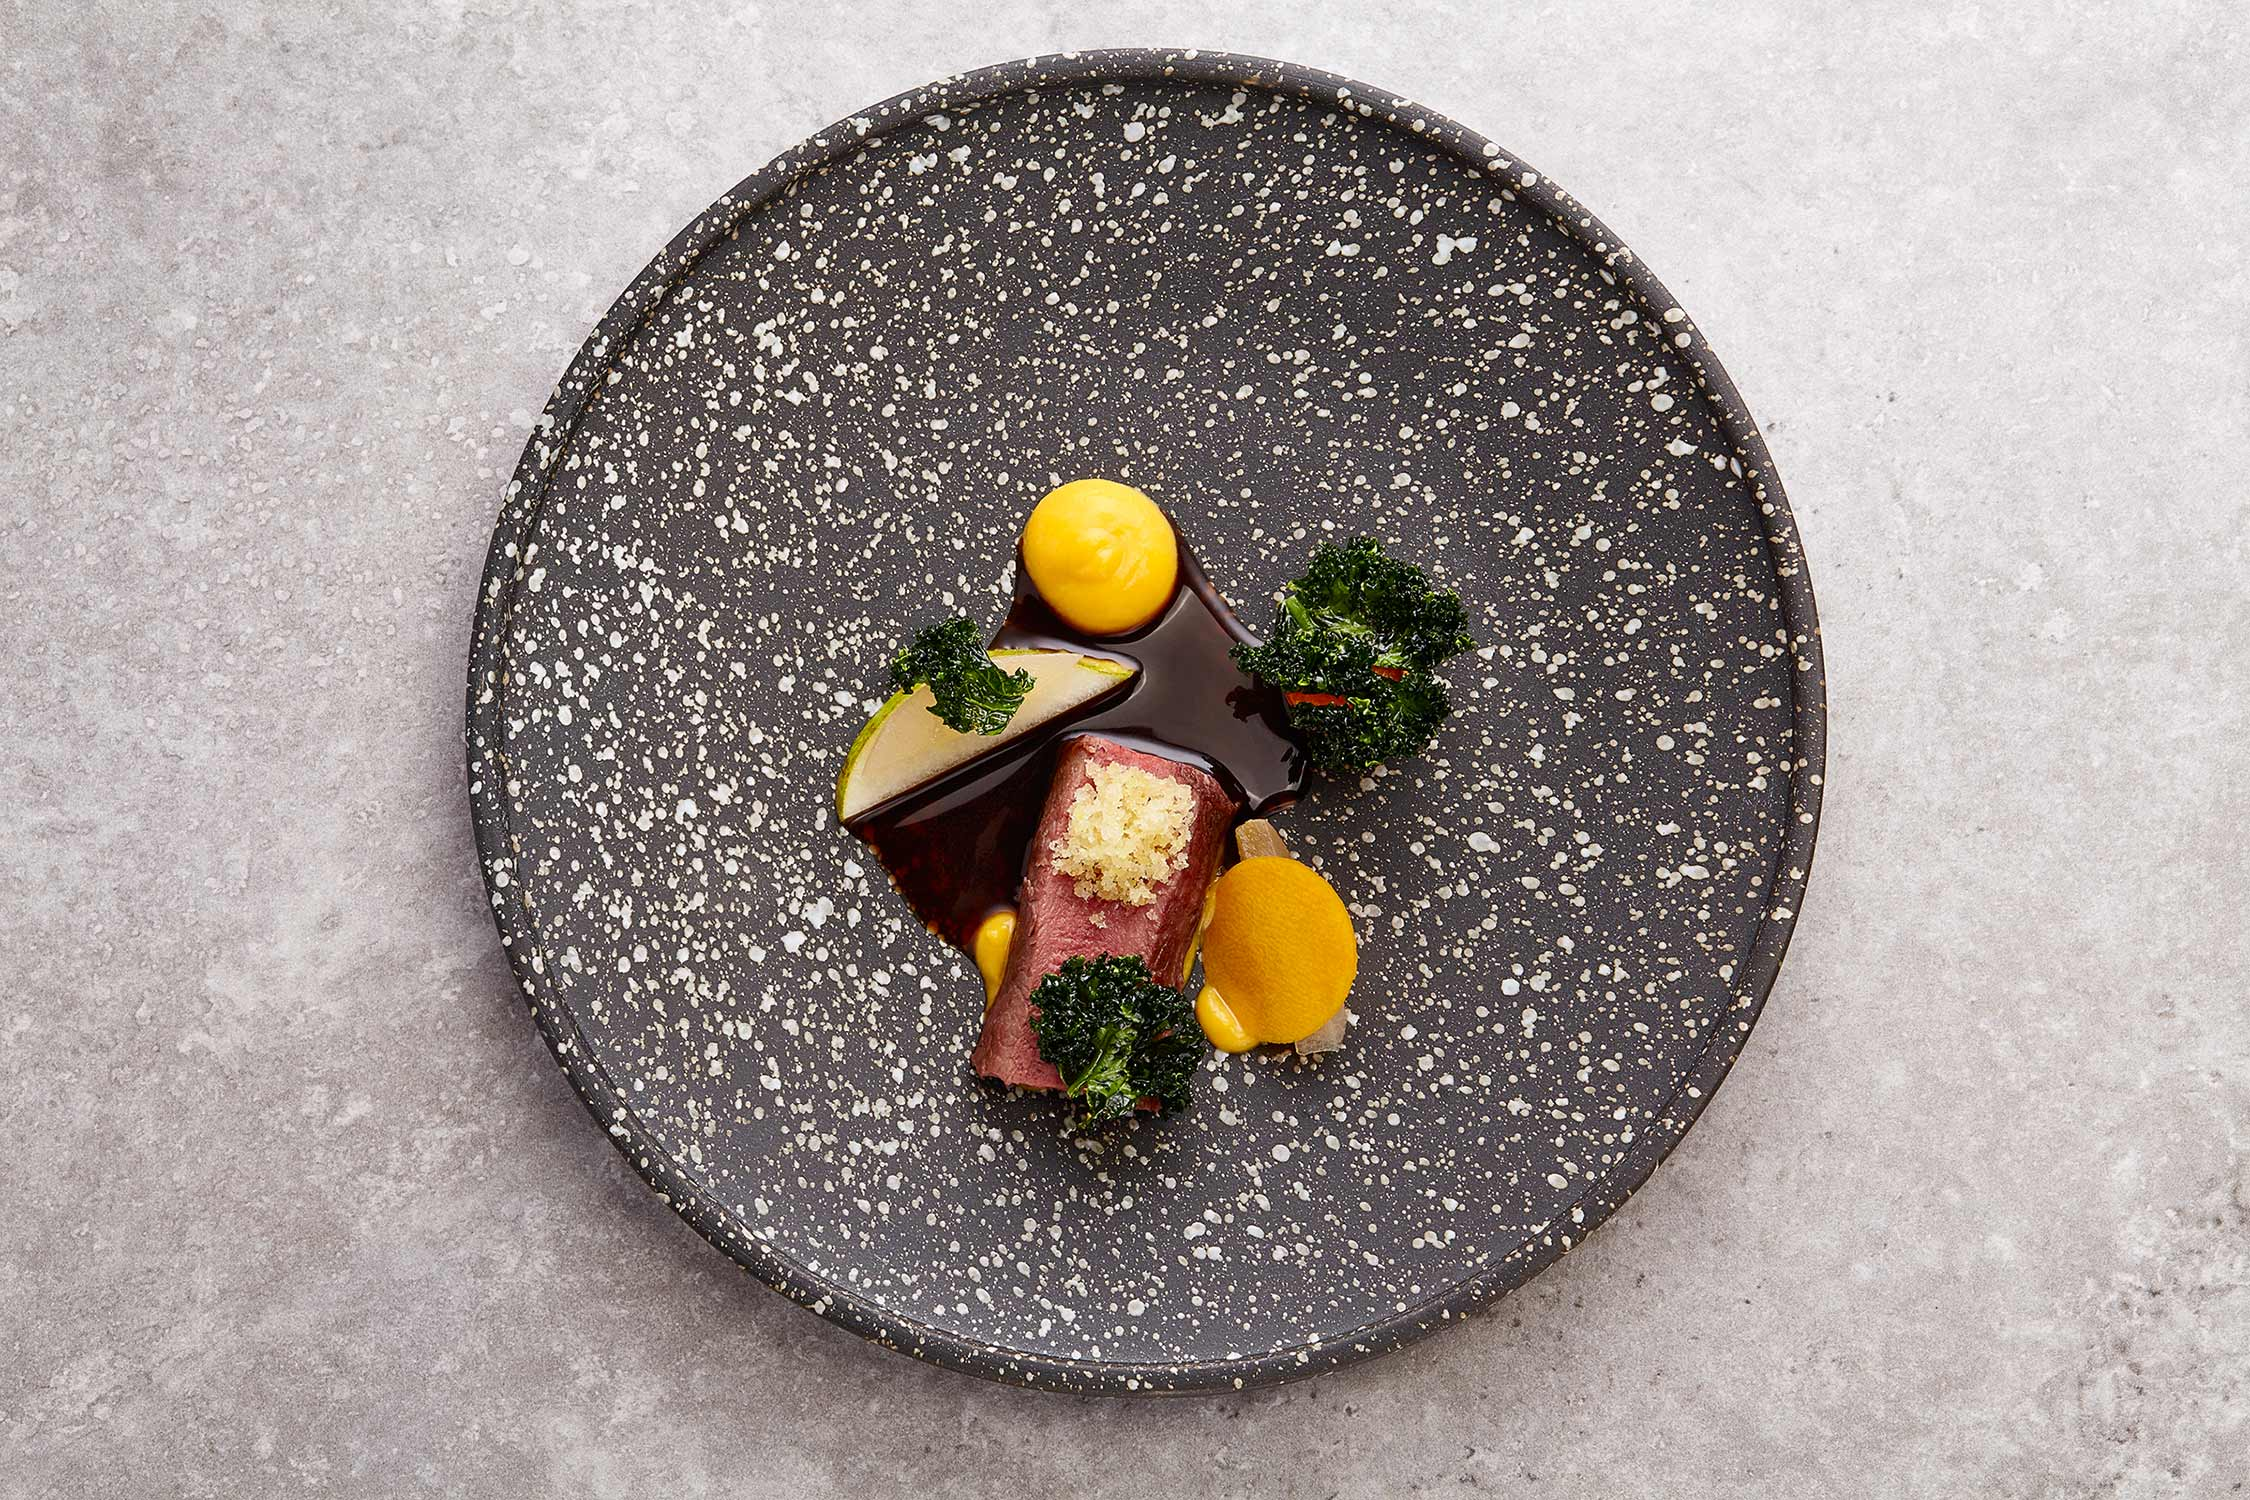 Venison Pear and Squash, Castlehill Restaurant, Scottish food photography